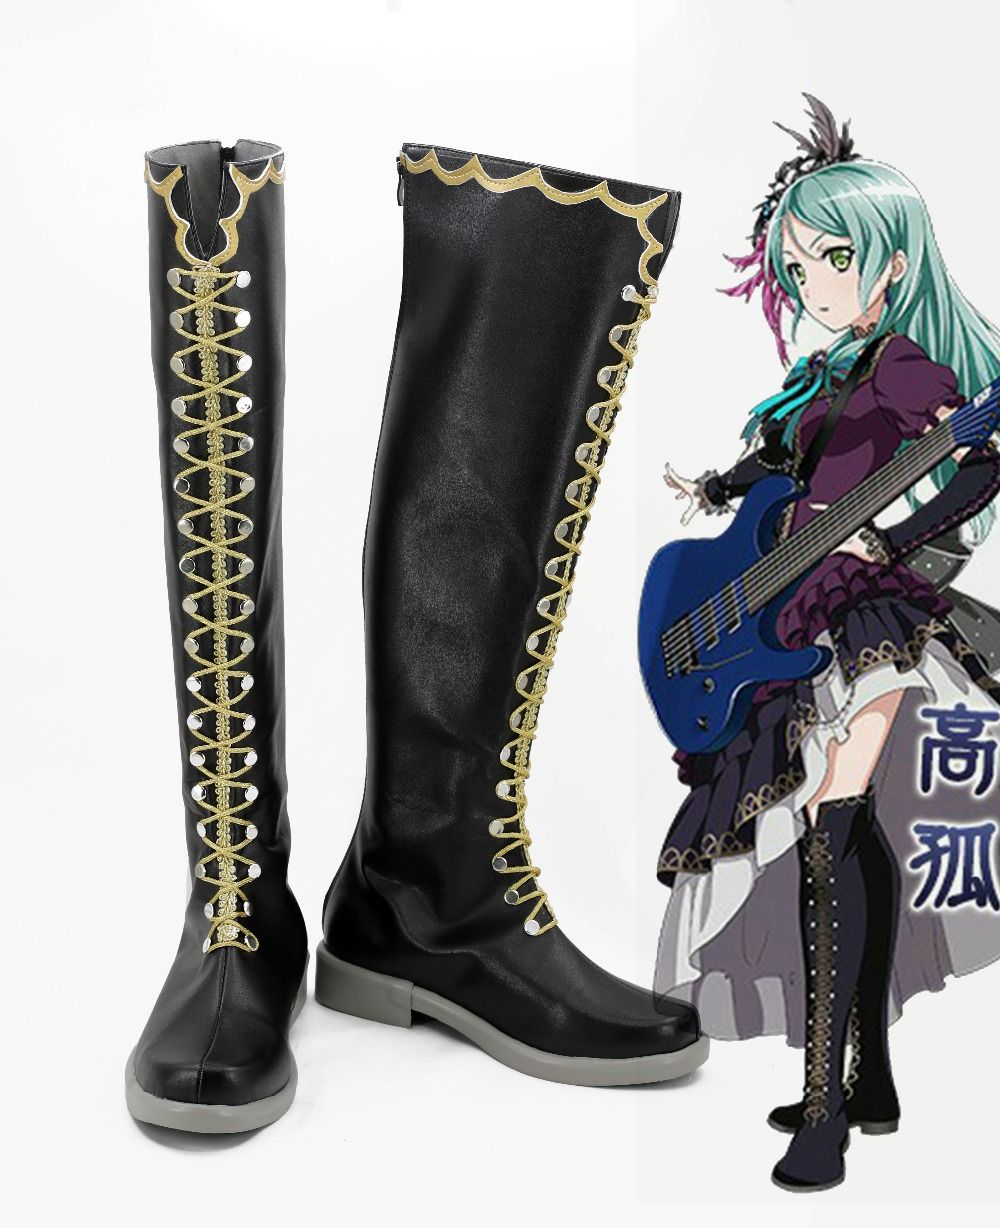 bang dream cosplay costume japanese anime unisex school sports shoes boots custom lolita single shoes # & bang dream cosplay costume japanese anime unisex school sports shoes ...